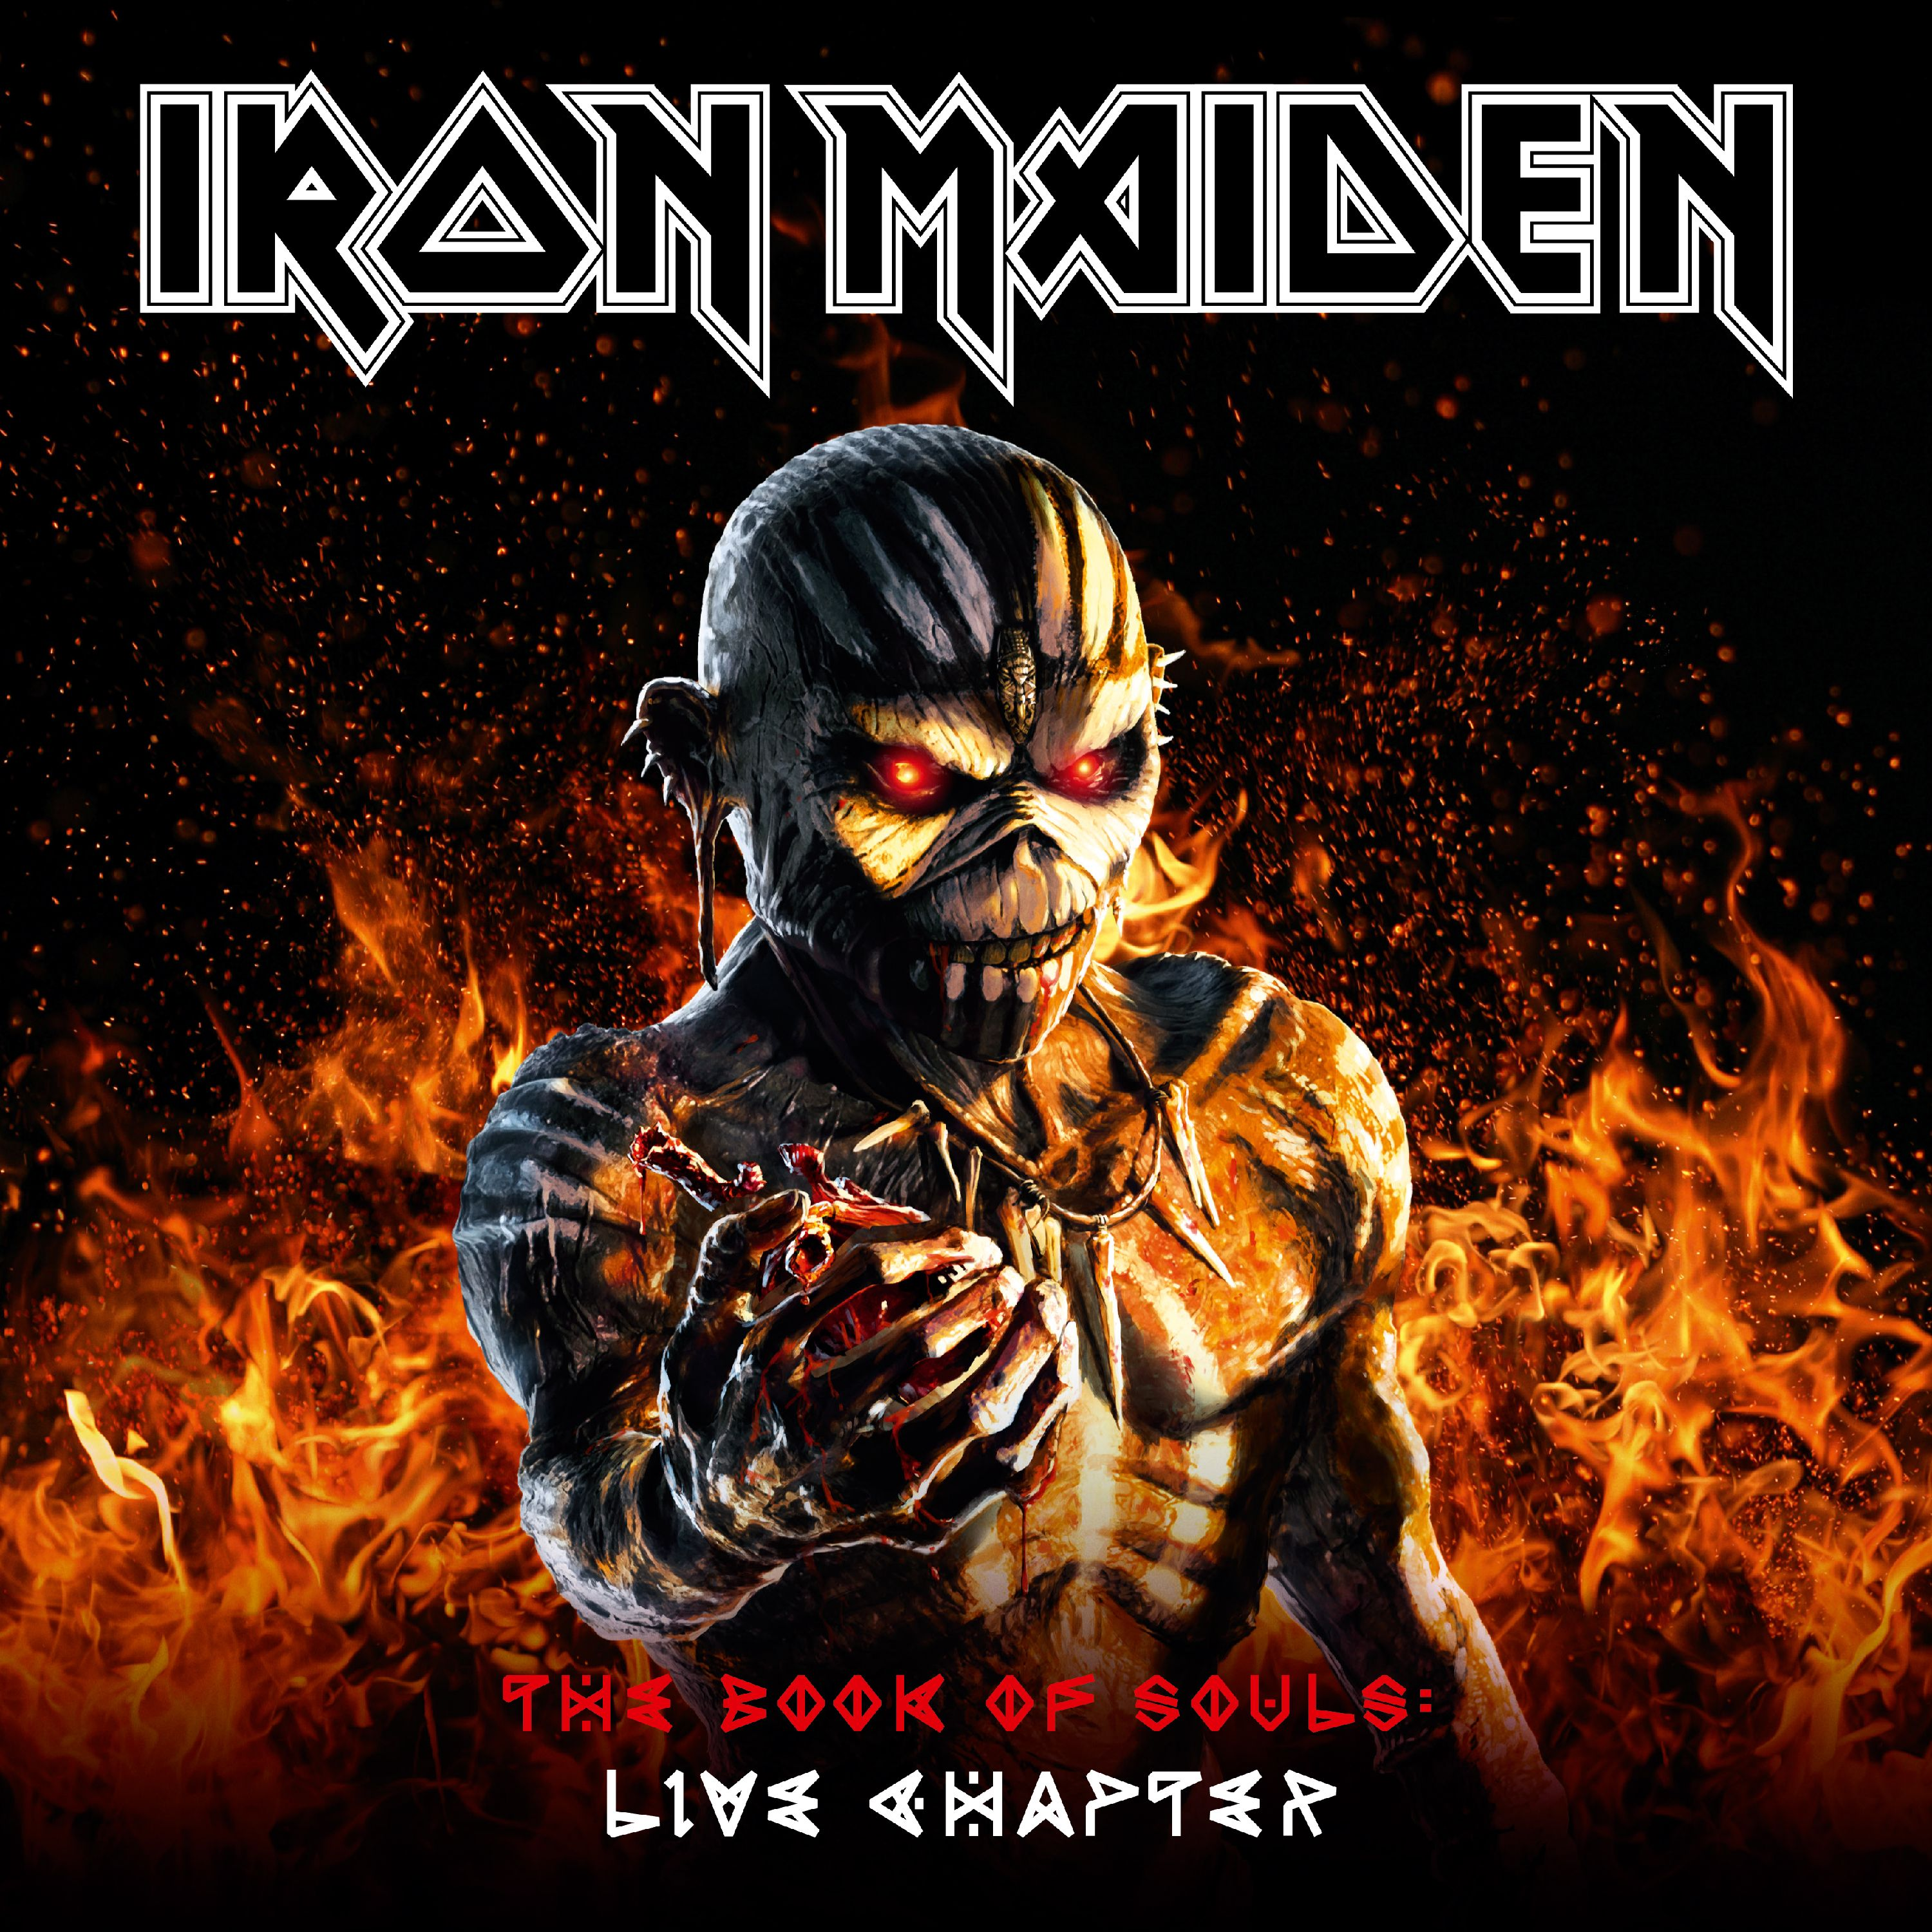 Iron Maiden The Book Of Souls The Live Chapter 16 17 Limited